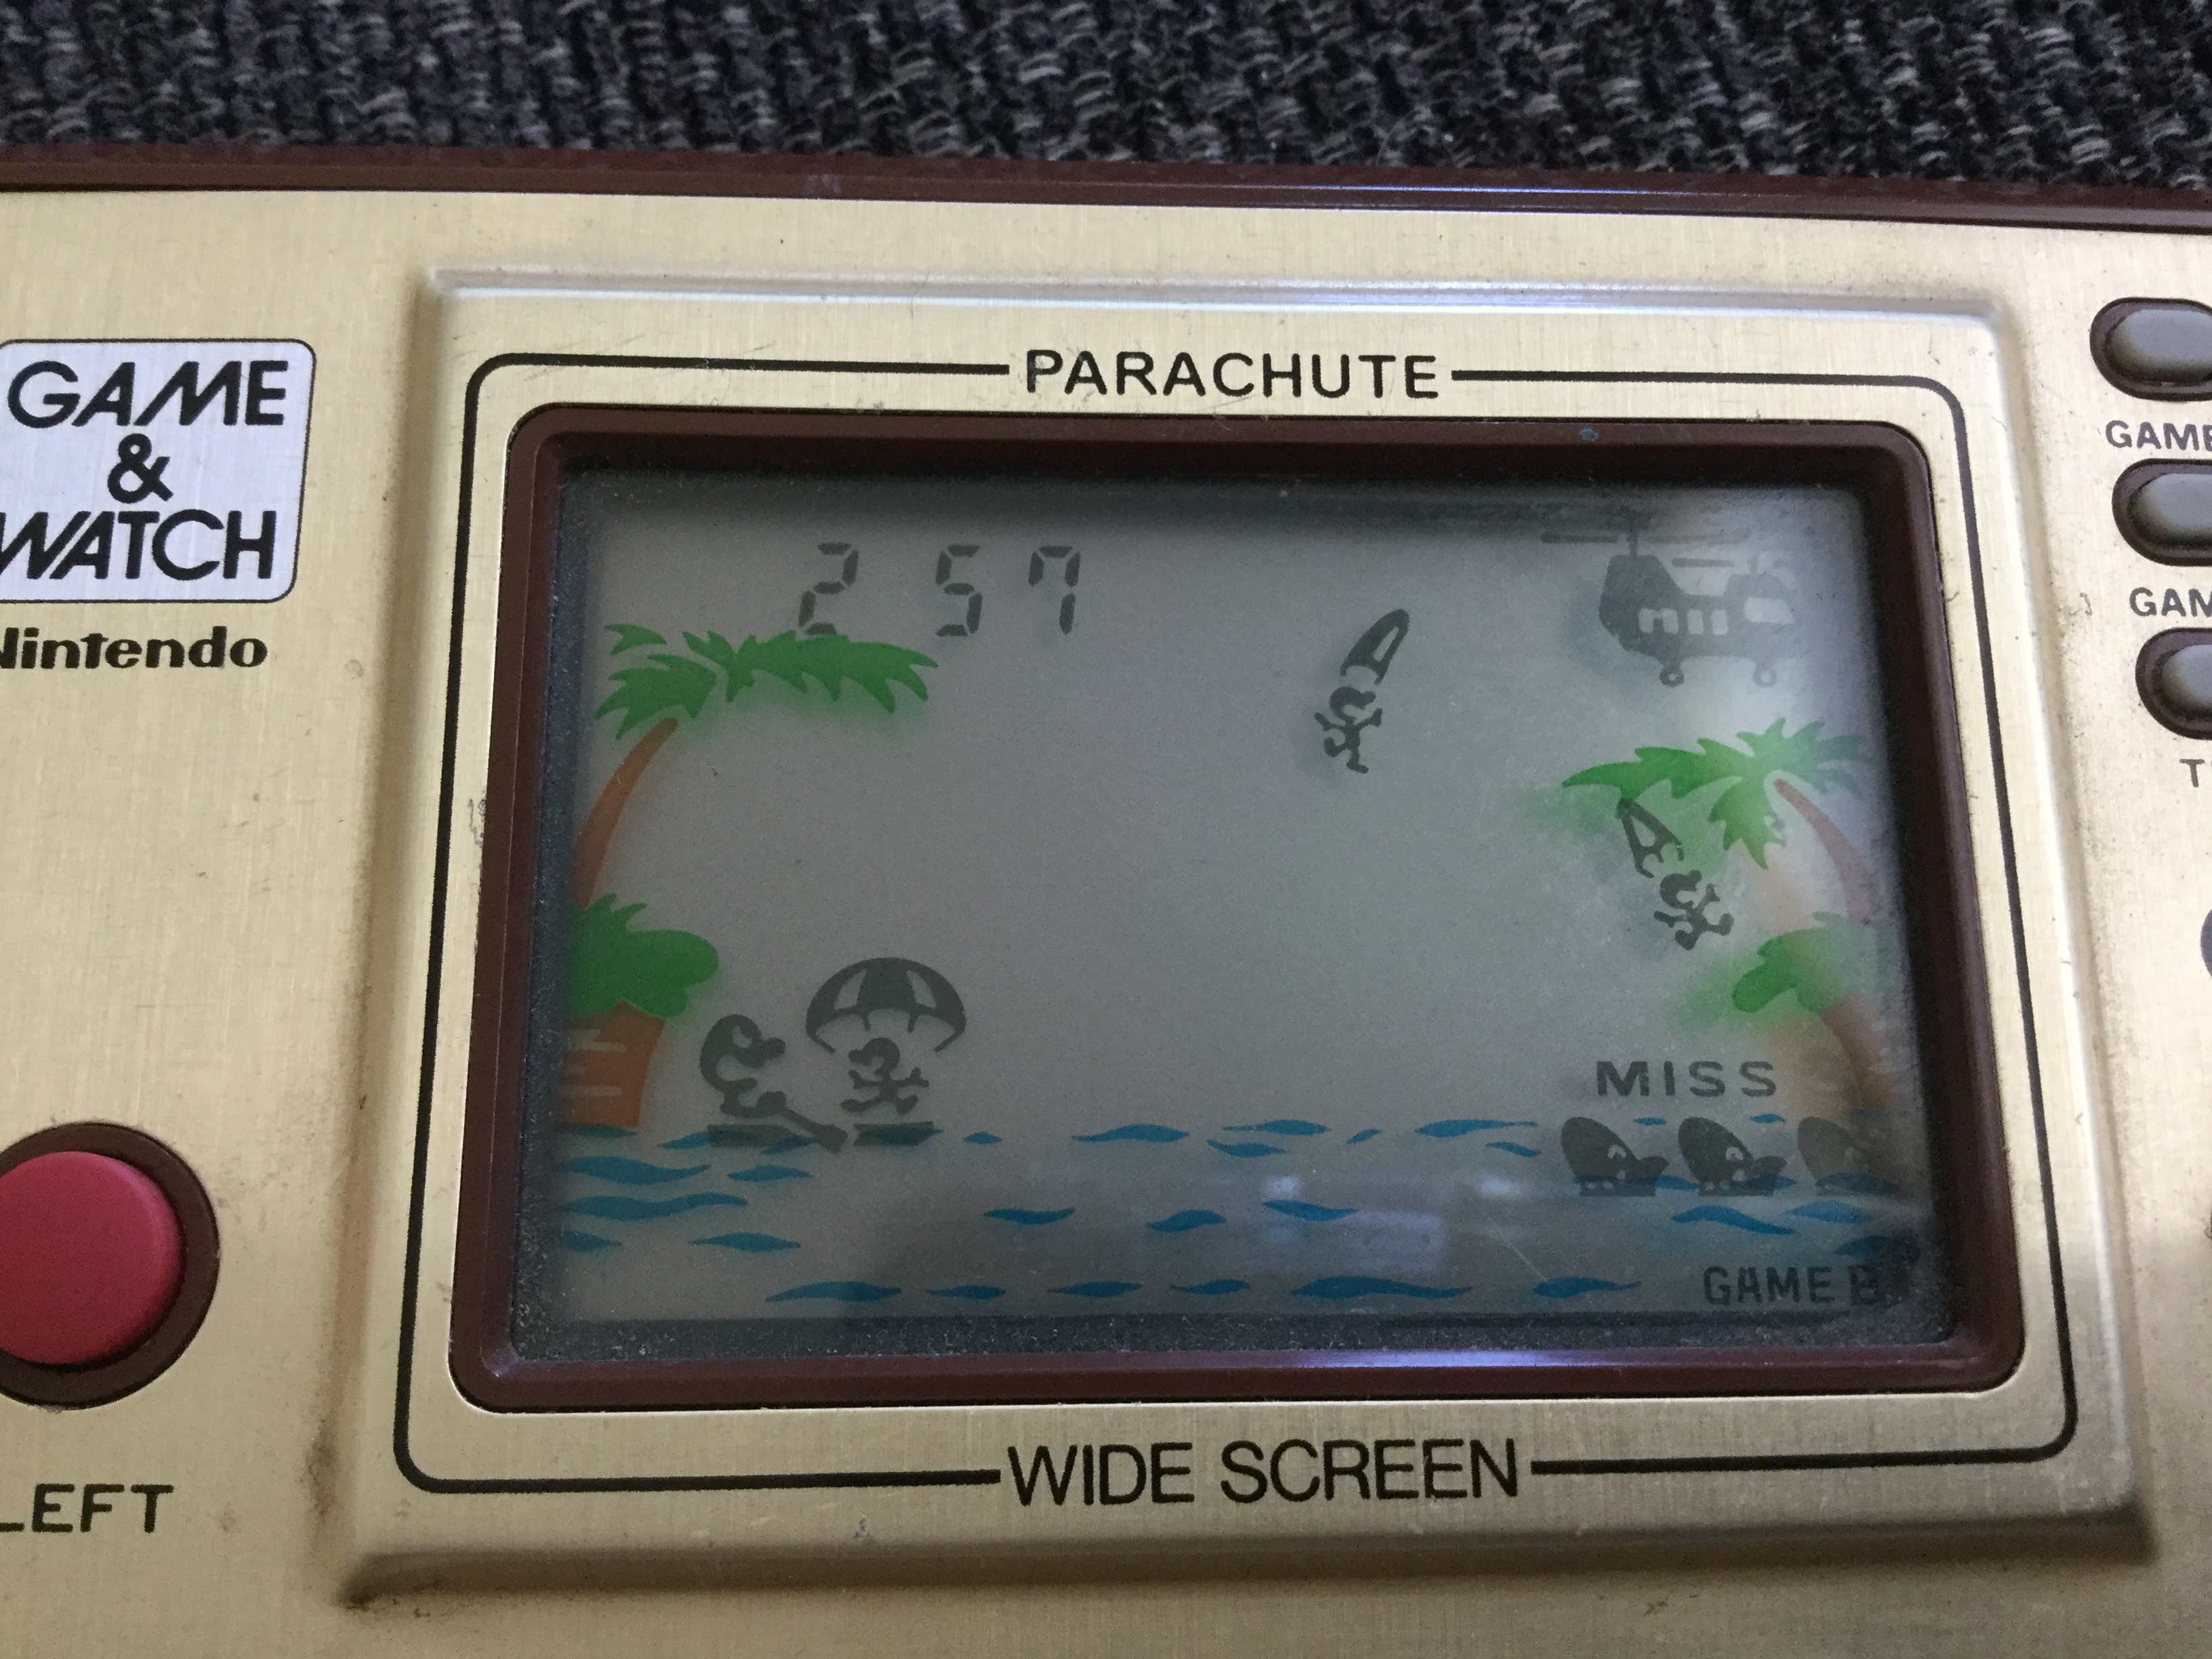 Frankie: Game & Watch: Parachute [Game B] (Dedicated Handheld) 257 points on 2018-05-07 11:33:45